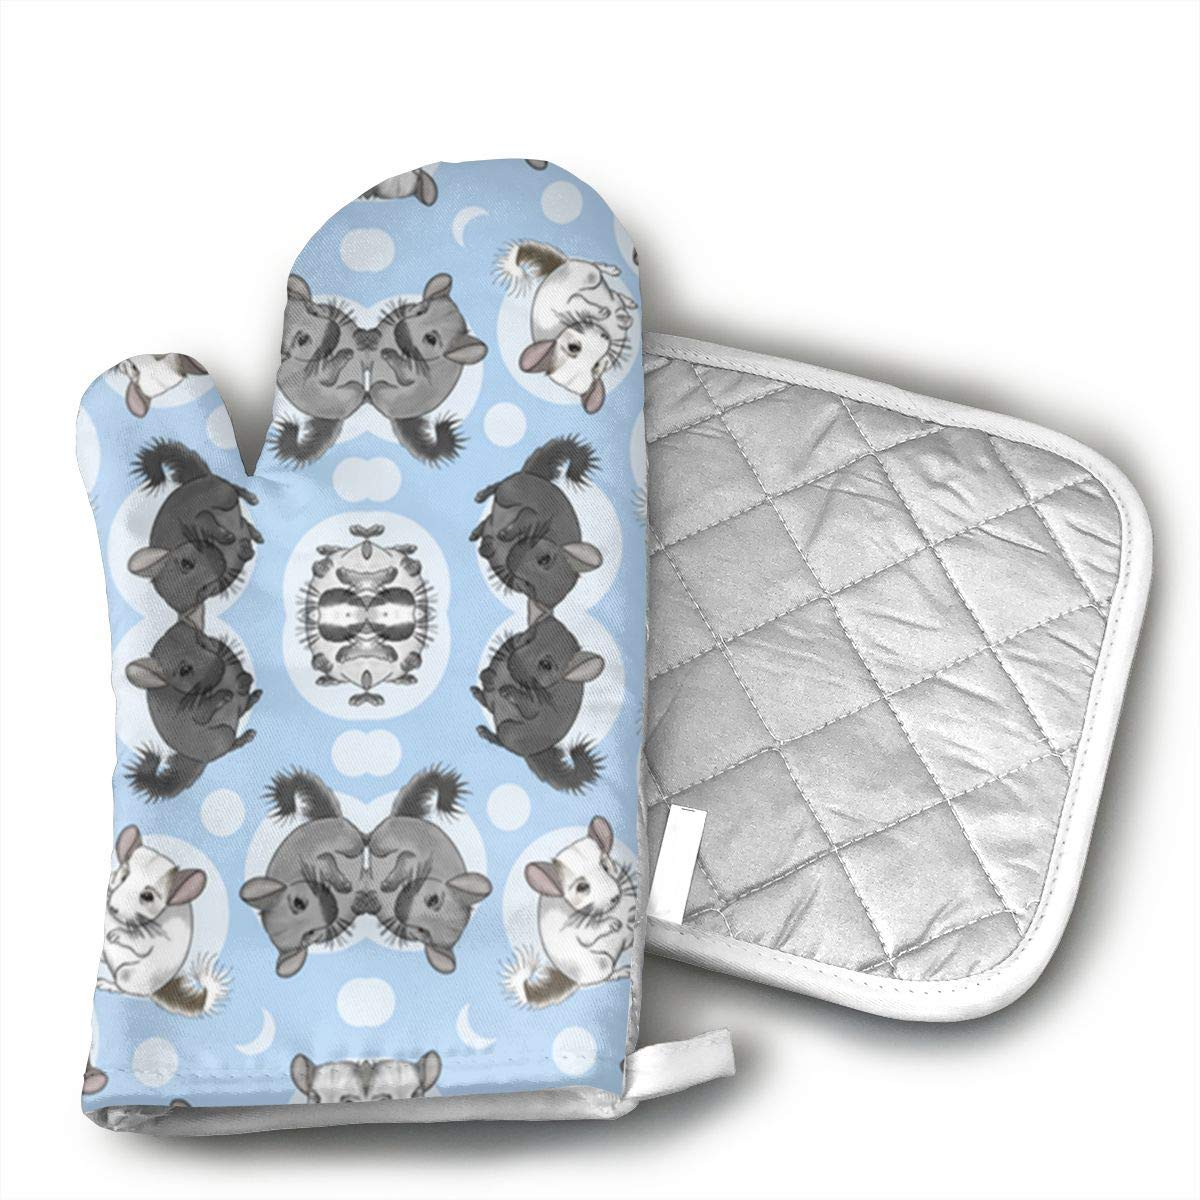 YUBZMD Small Blue Chinchillas and Moon Oven Mitts and hot Pot mat for Cooking Grill